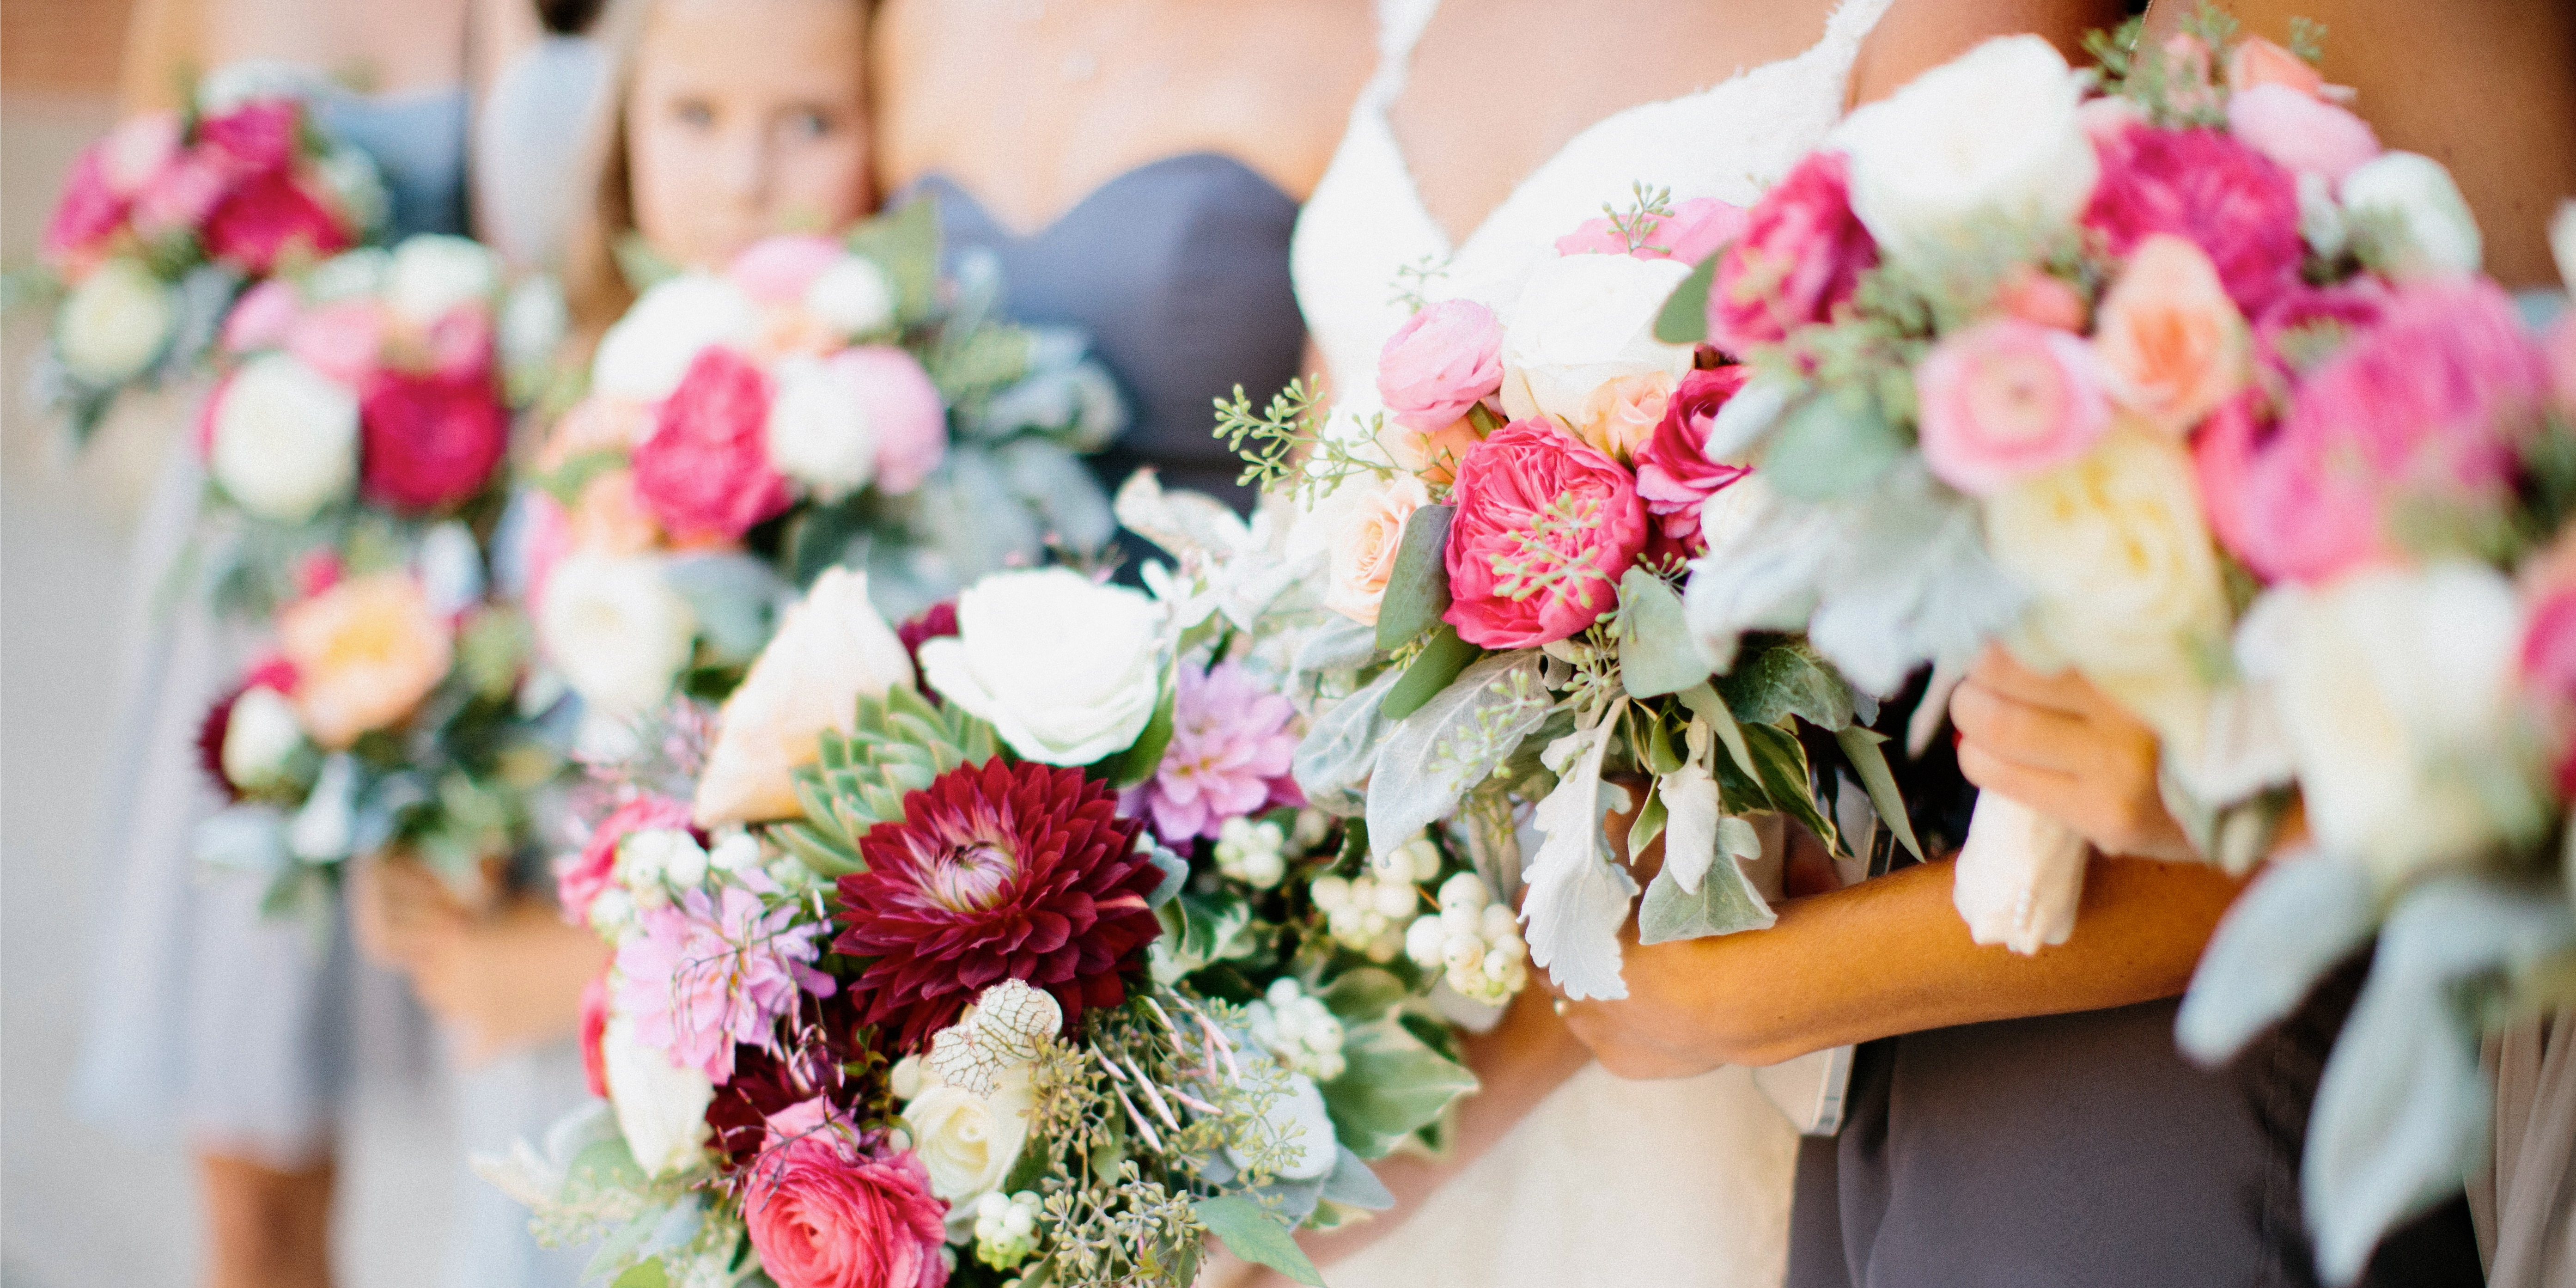 Posted by The Flower Firm - A Design/Decor/Floral professional